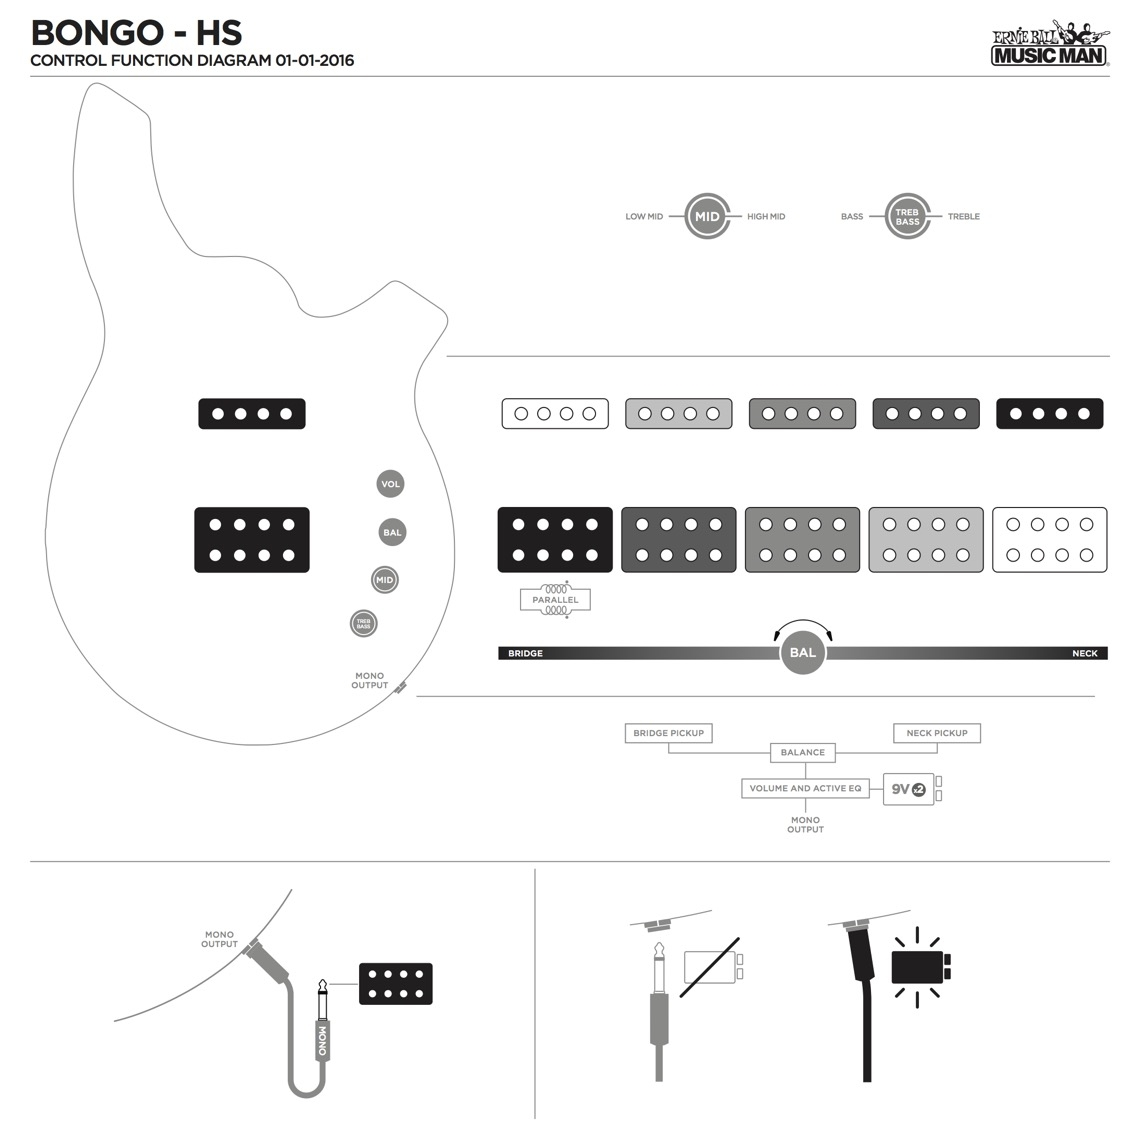 Bongo 6 Basses Ernie Ball Music Man Vendo 63 Wiring Diagram Pickup Configuration 1